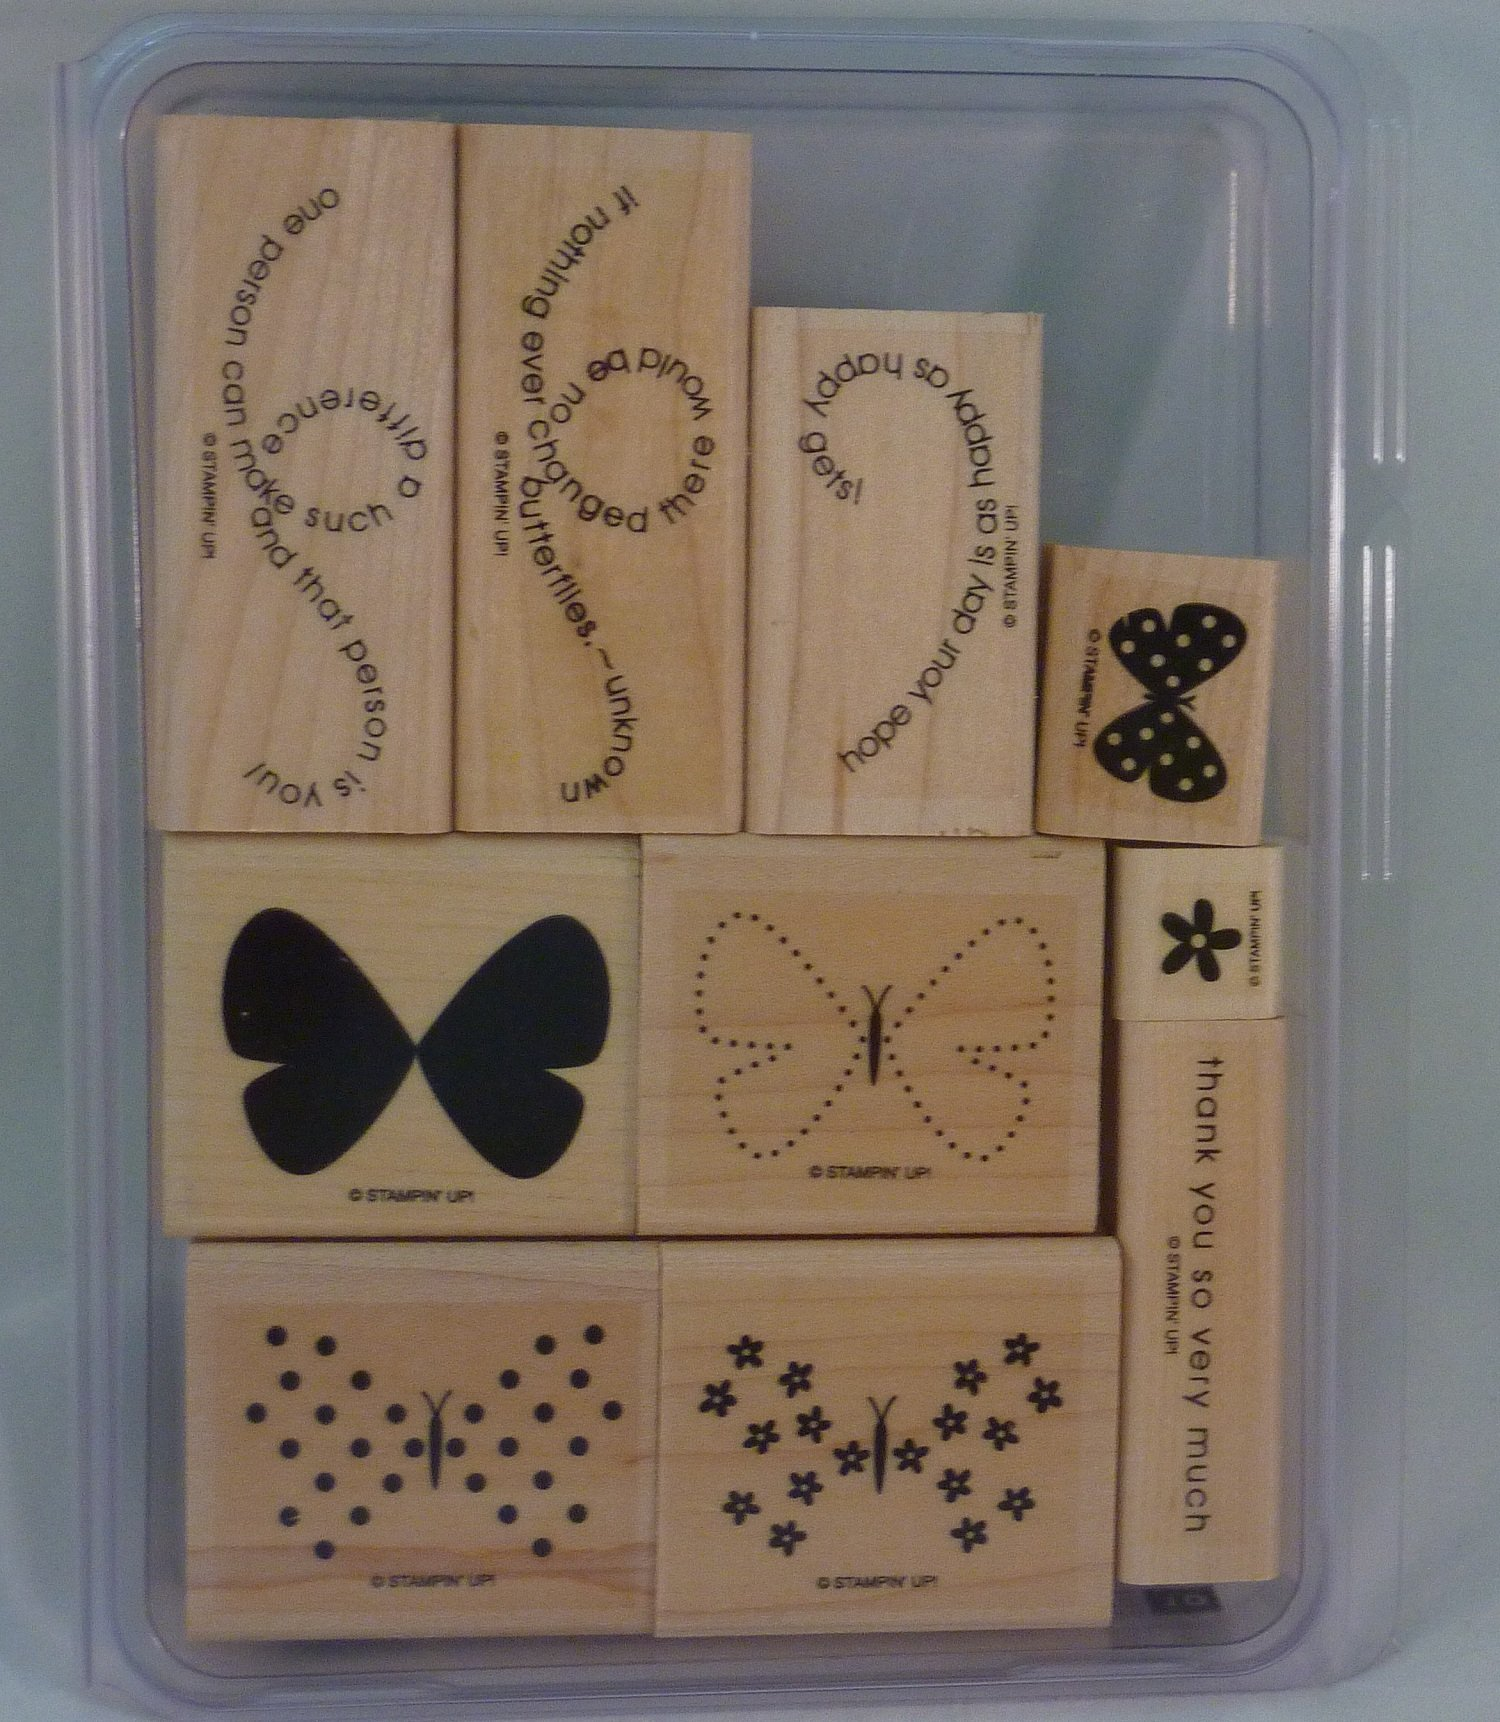 Stampin' Up! FLIGHT OF THE BUTTERFLY Set of 10 Decorative Rubber Stamps Retired